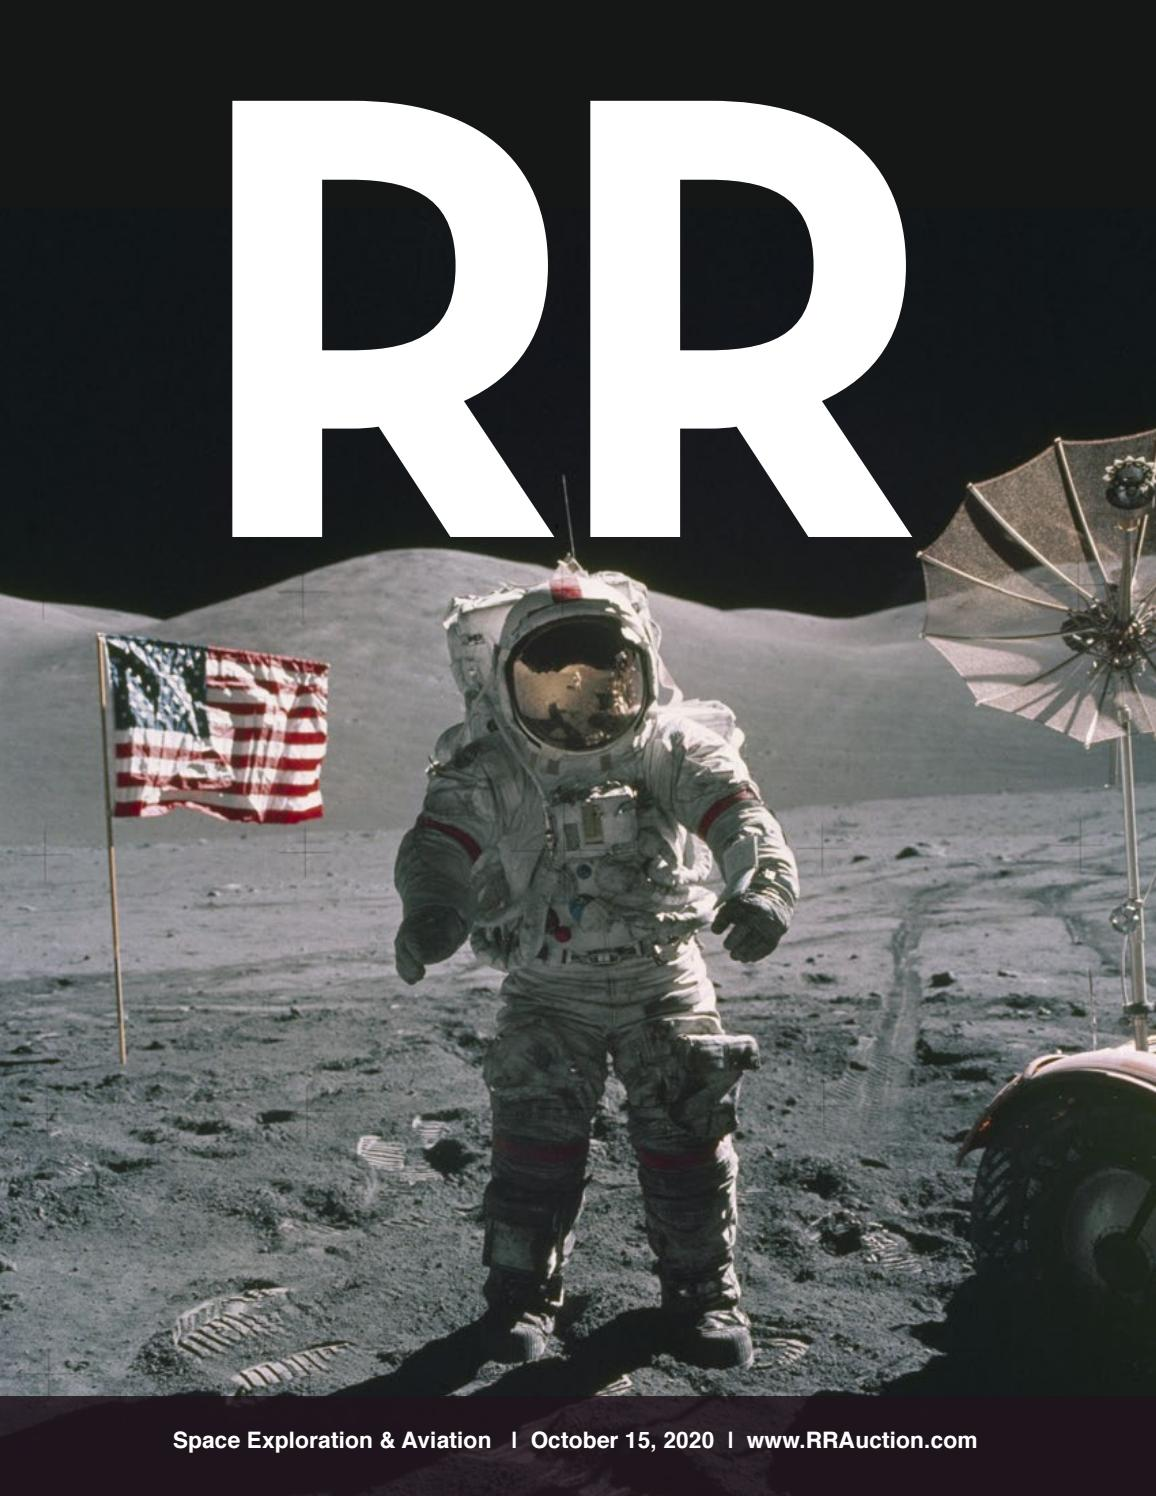 Rr Auction Space Exploration And Aviation By Rr Auction Issuu